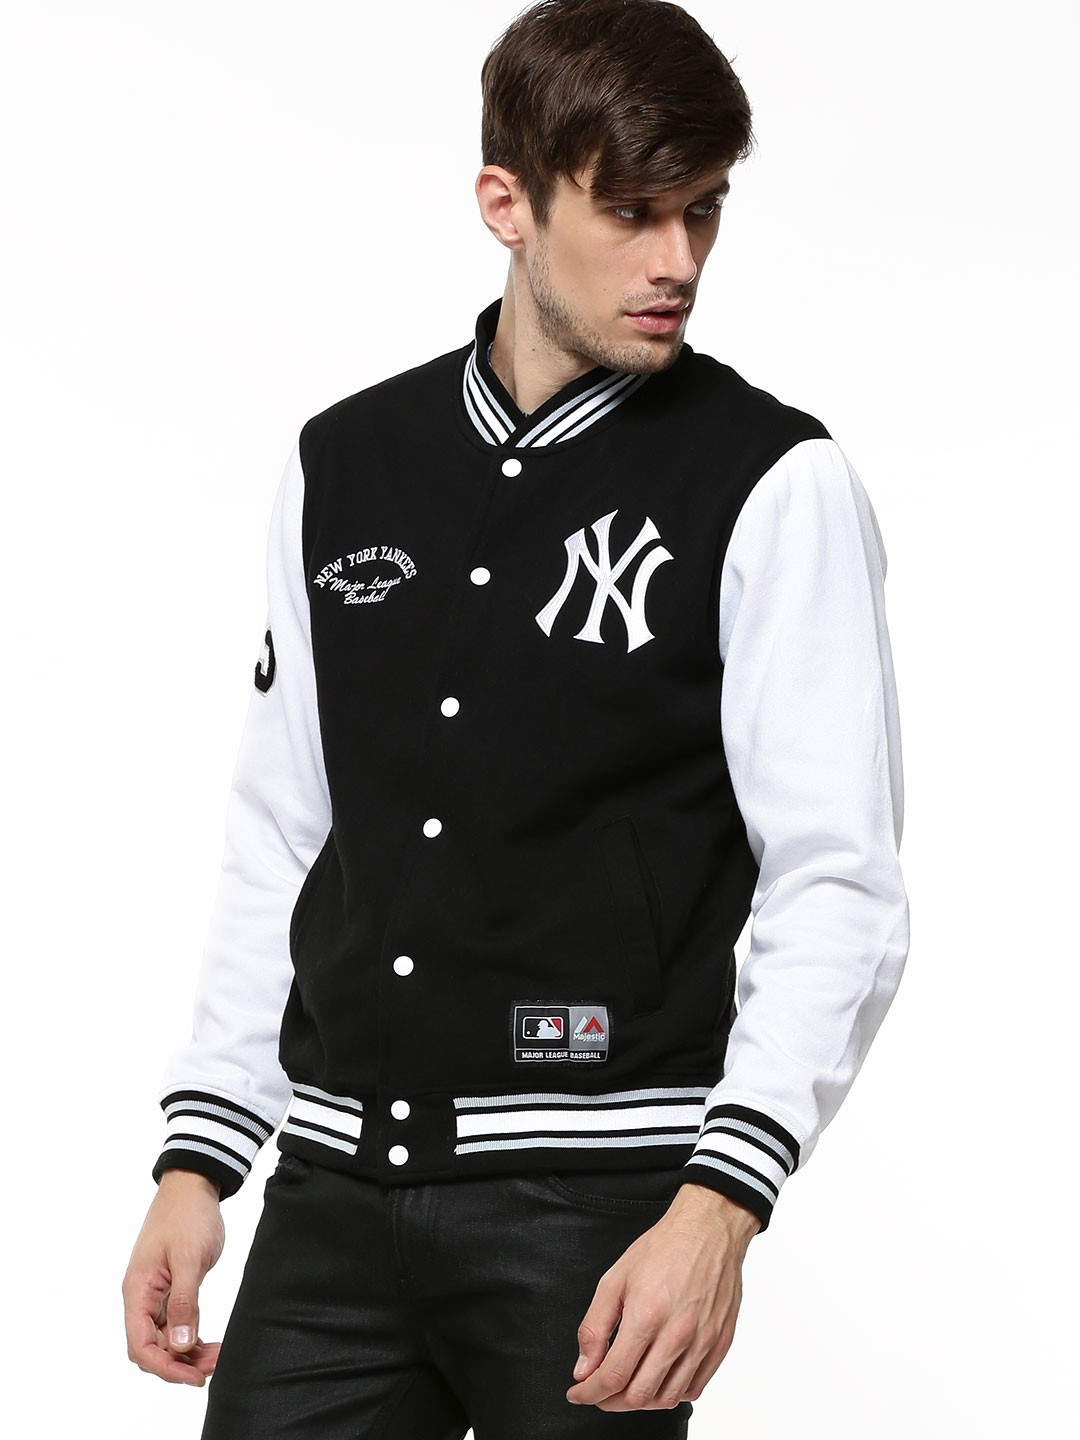 Buy baseball jackets